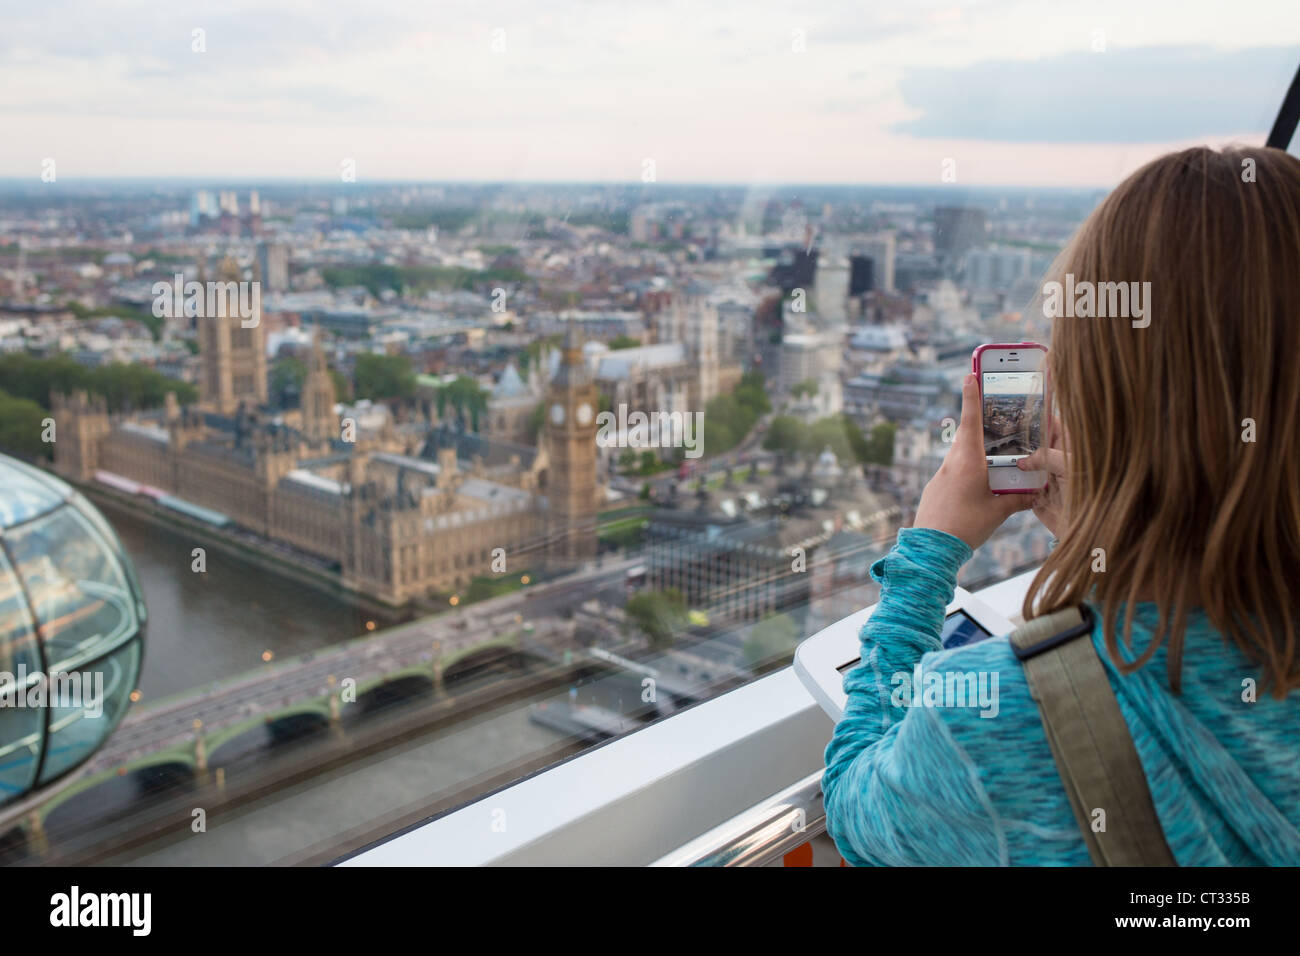 A young girl takes a photo from the London Eye - Stock Image